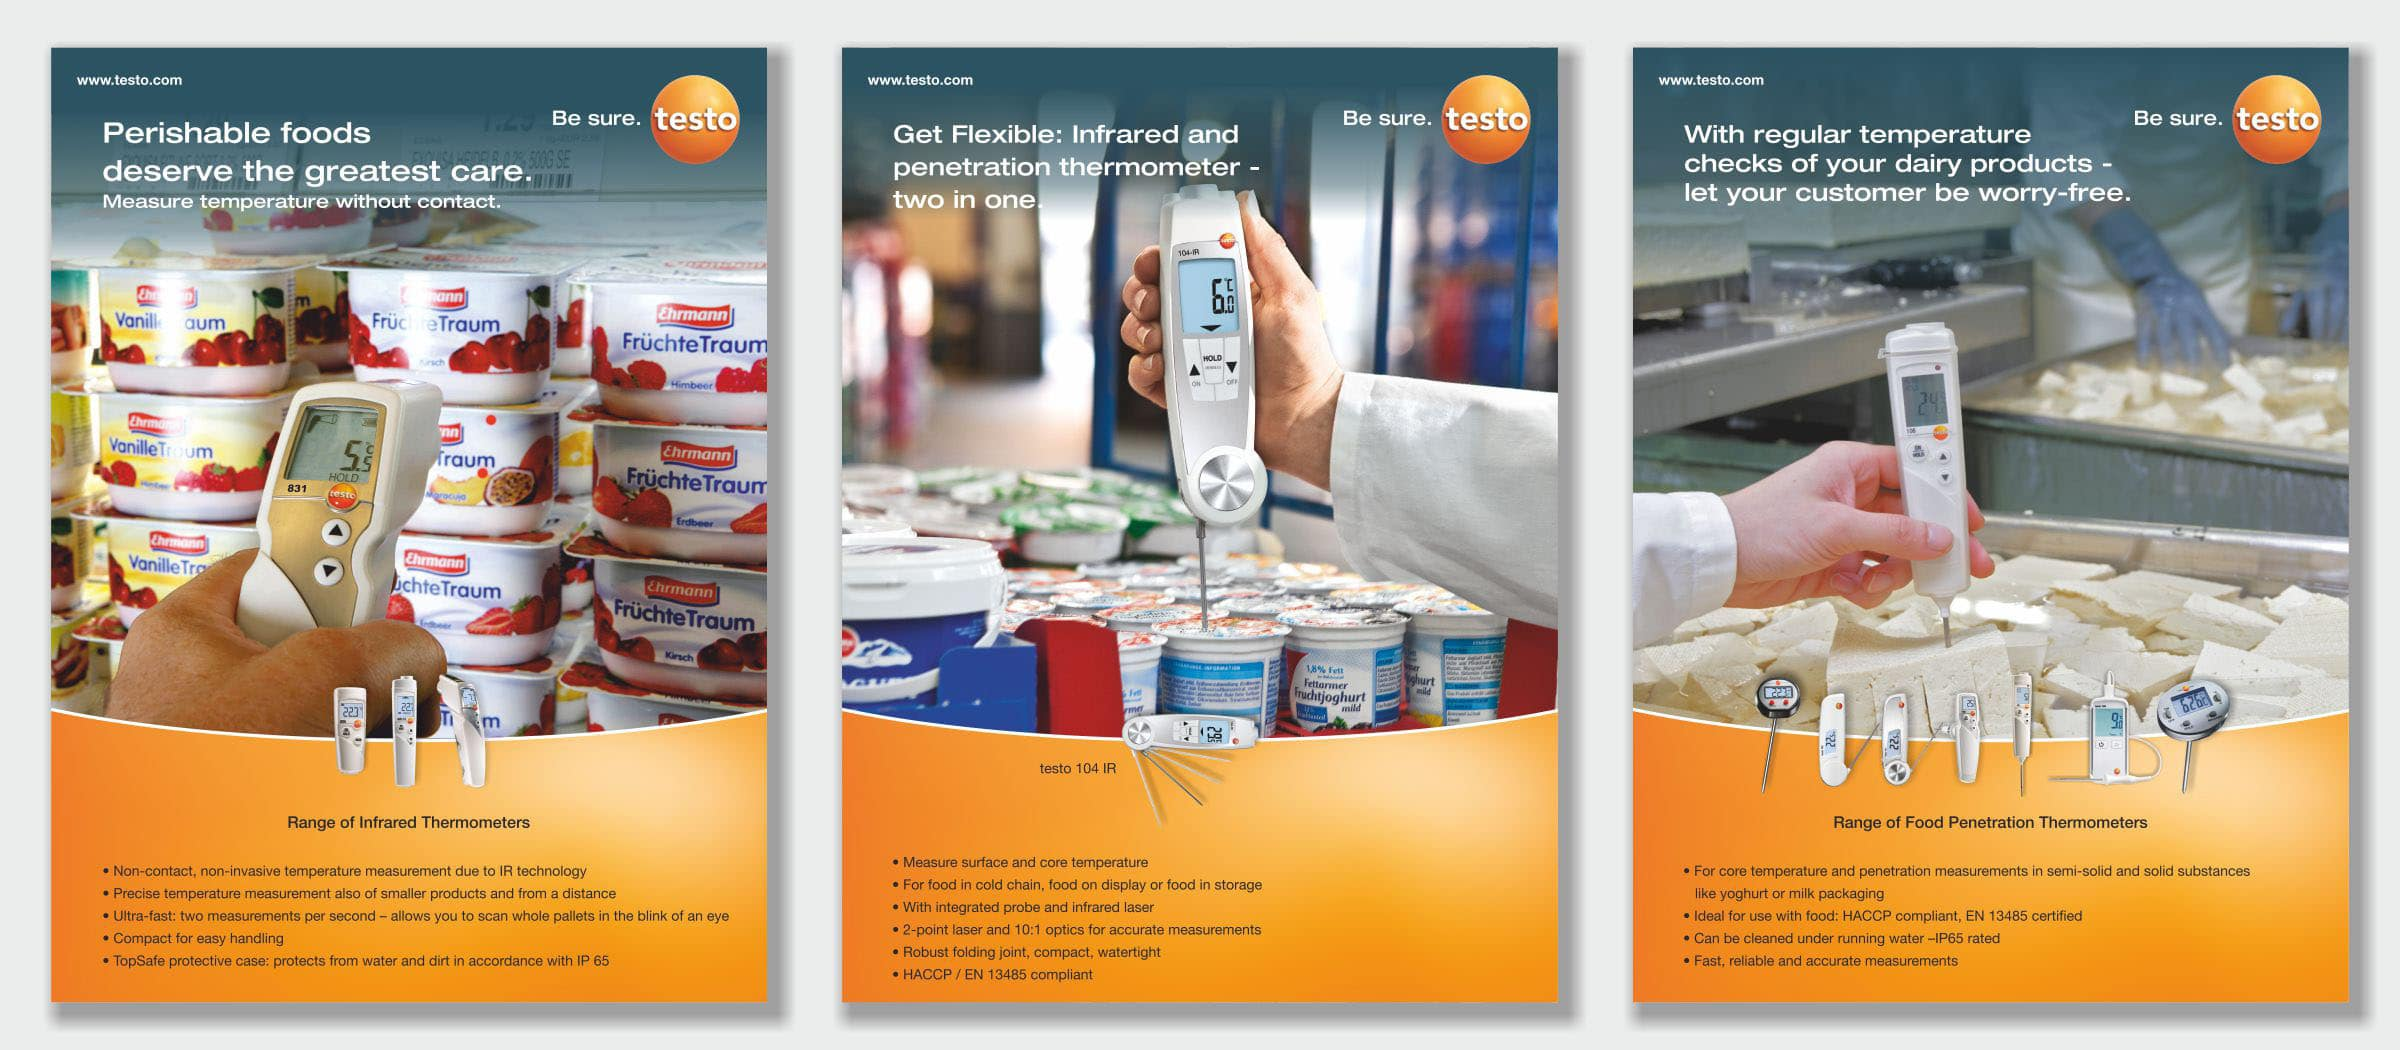 3 product artworks of Testo company for poster presentation at a dairy expo